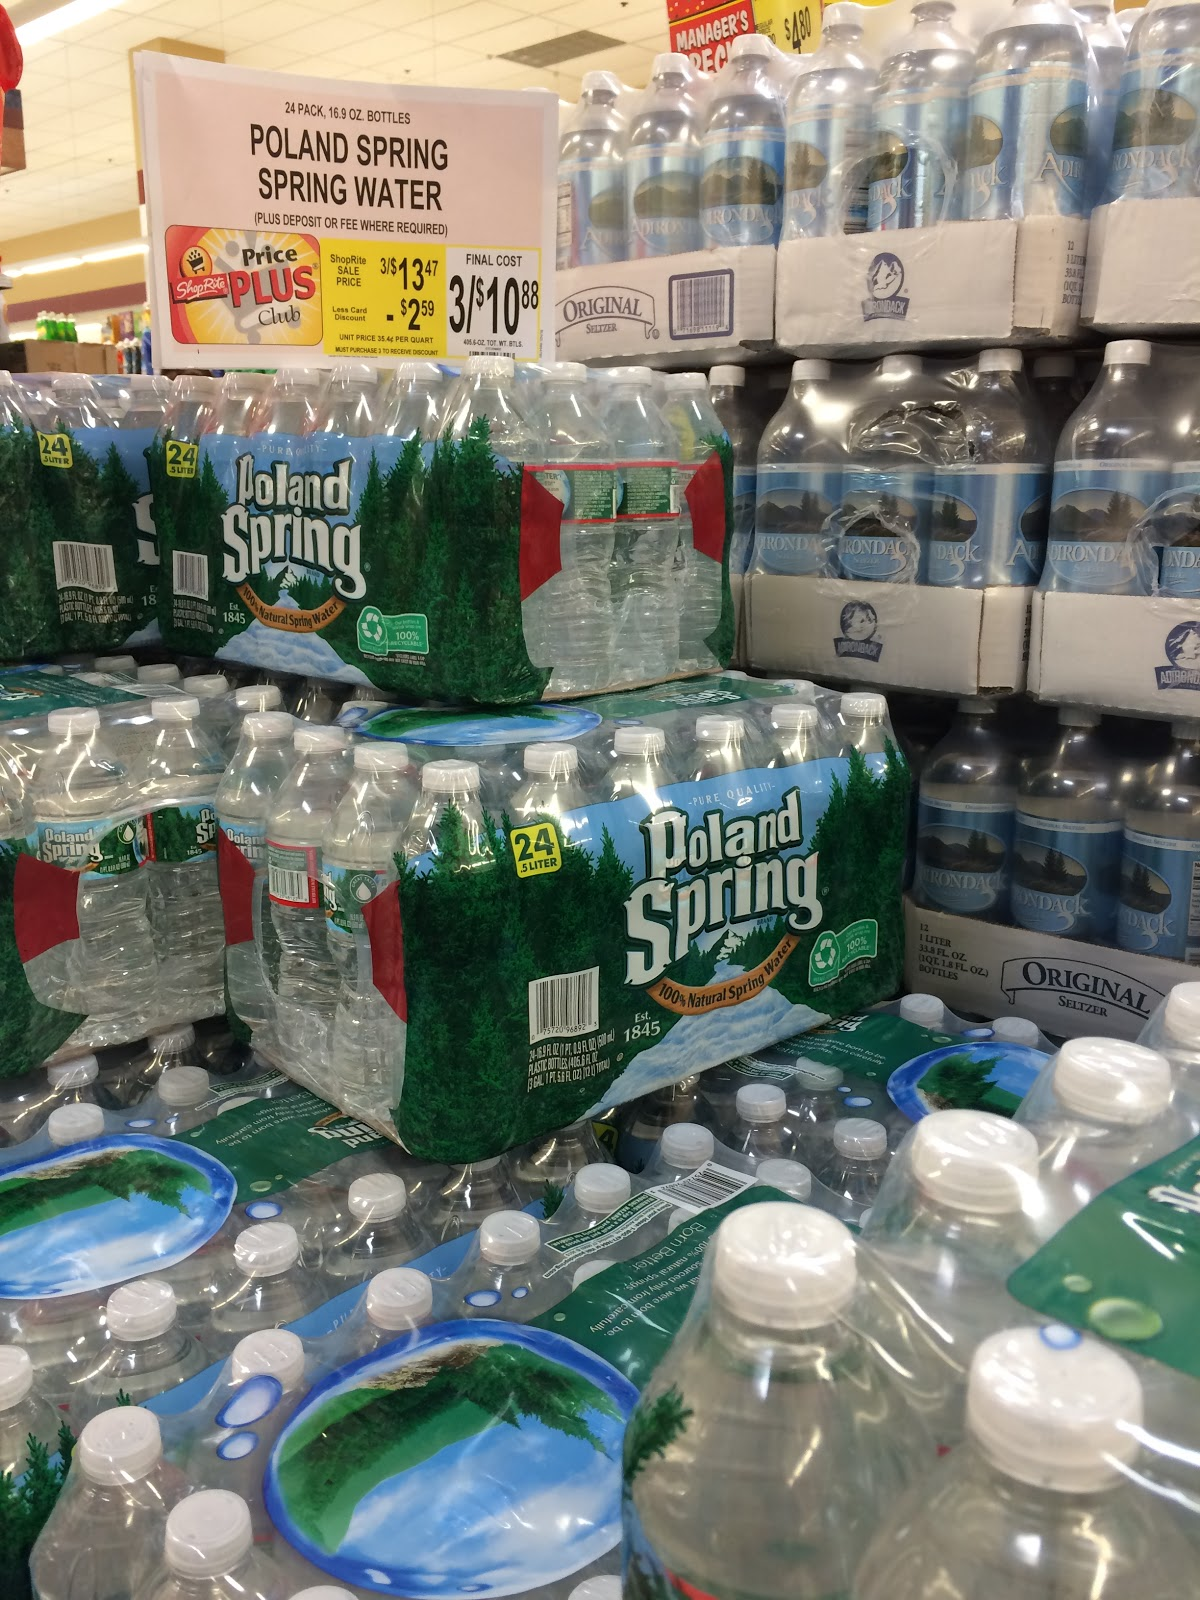 Shoprite Can Can Sale 2015 - Poland spring water on sale at shoprite in october 2015